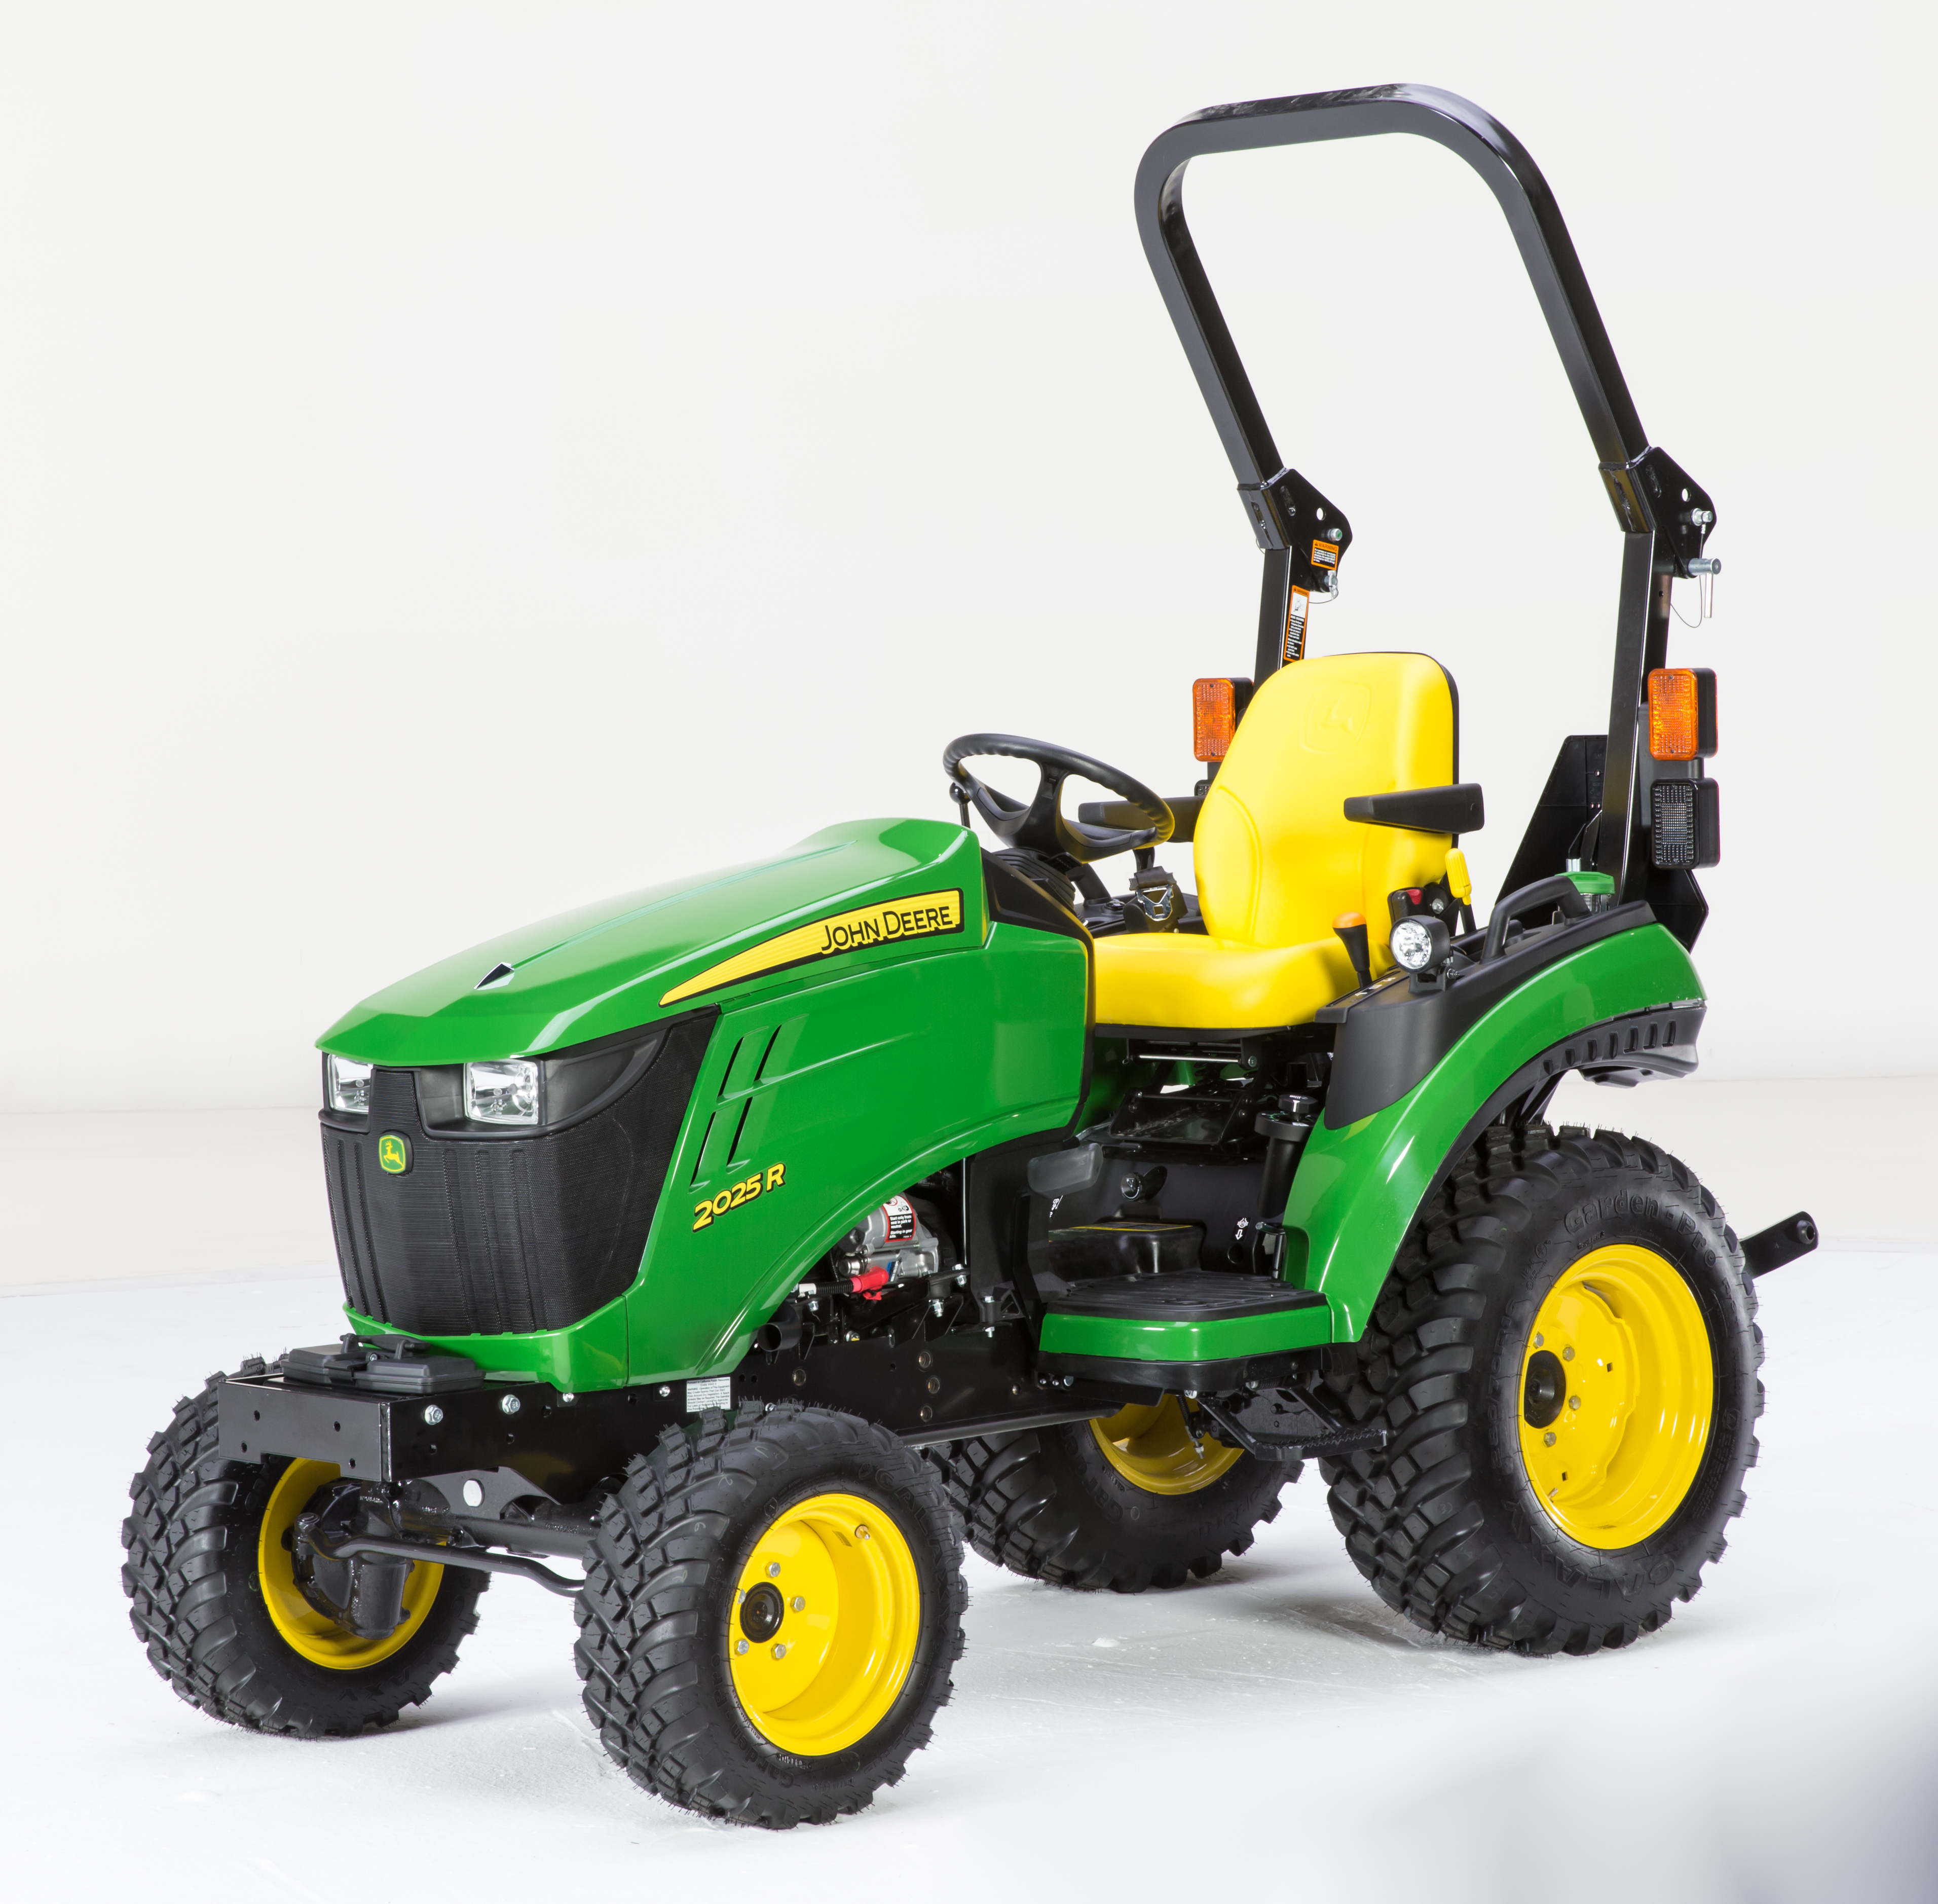 Recalled John Deere 2025R Compact Utility Tractor